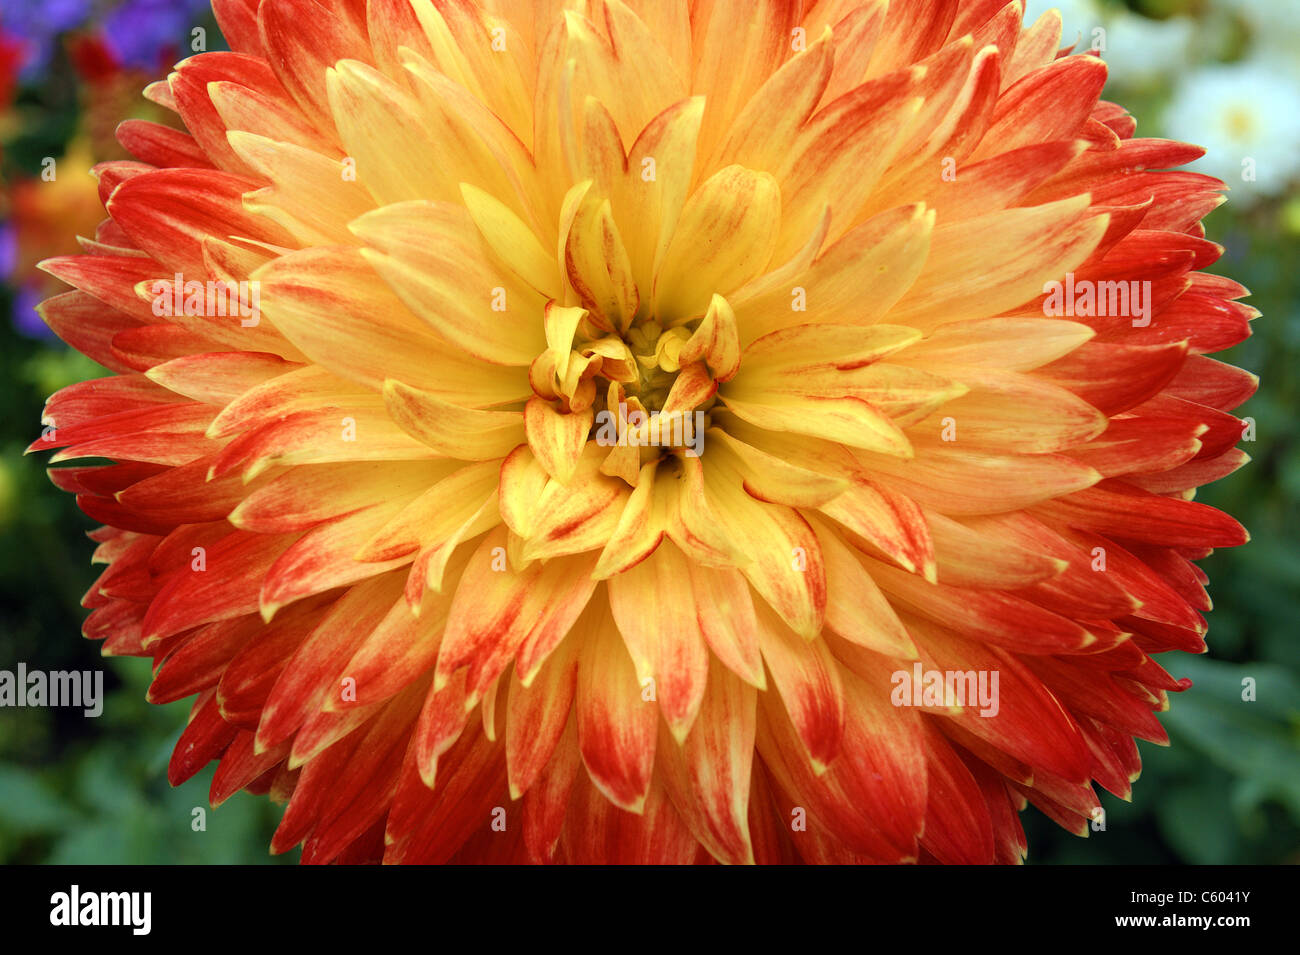 Red And Yellow Dahlia Stock Photos Red And Yellow Dahlia Stock